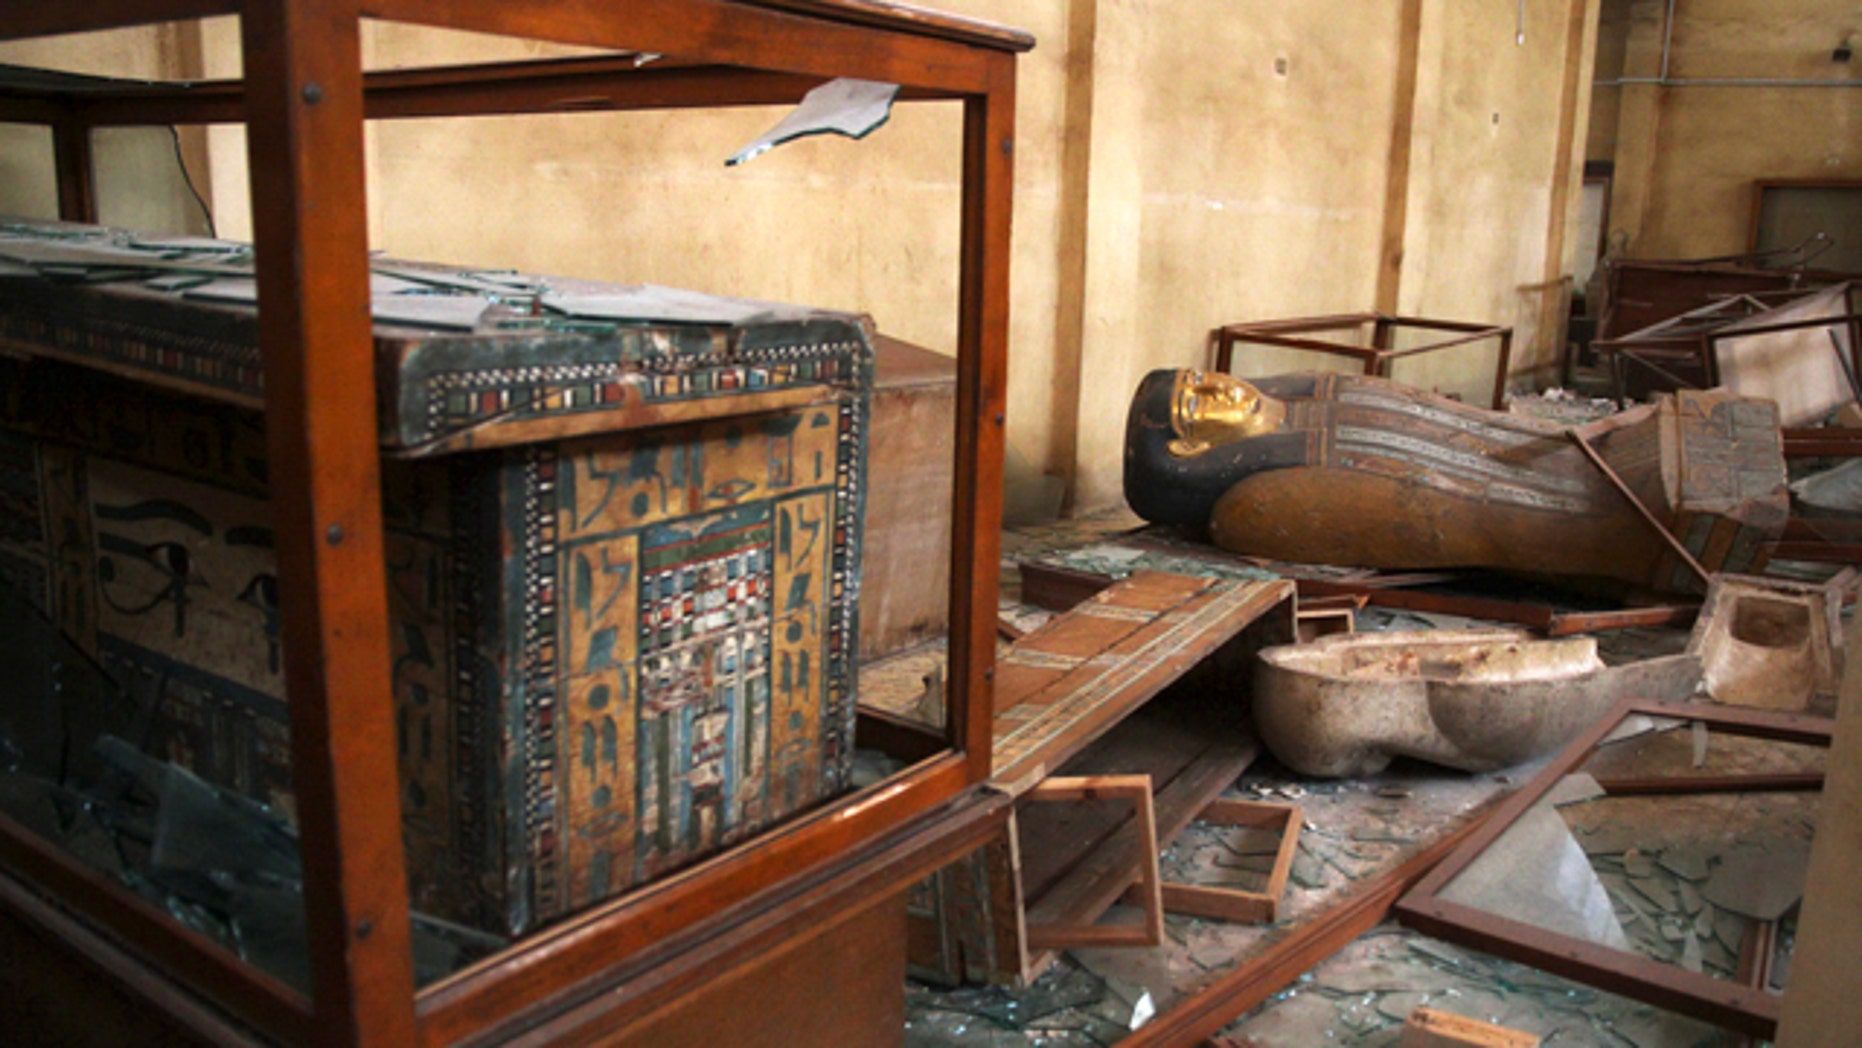 Aug. 17, 2013: Damaged pharaonic objects lie on the floor and in broken cases in the Malawi Antiquities Museum after it was ransacked and looted.